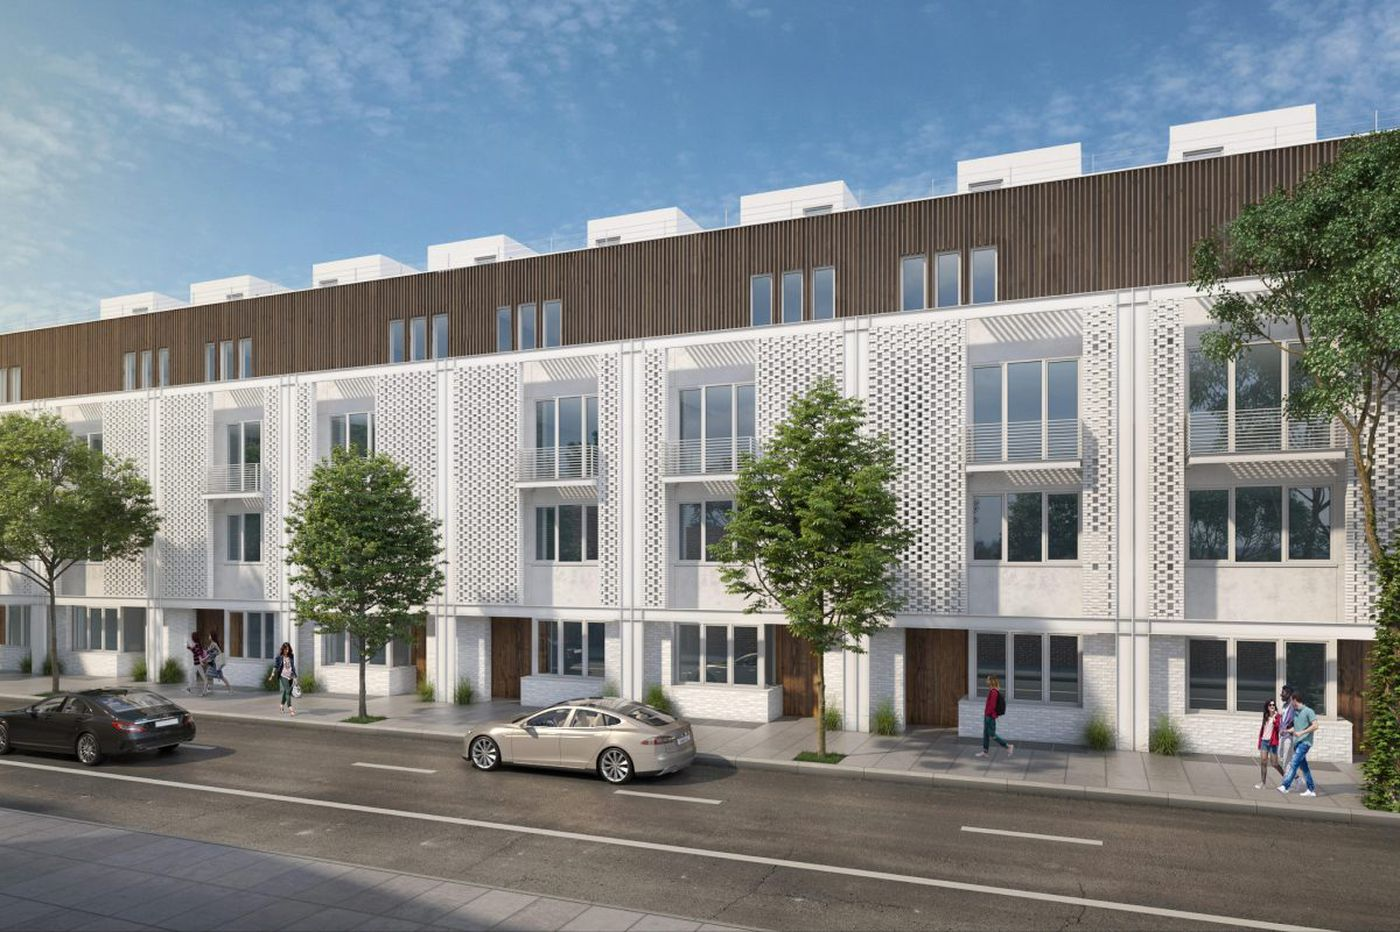 Pricey townhouses planned at former Lombard St. garage site near Rittenhouse Square